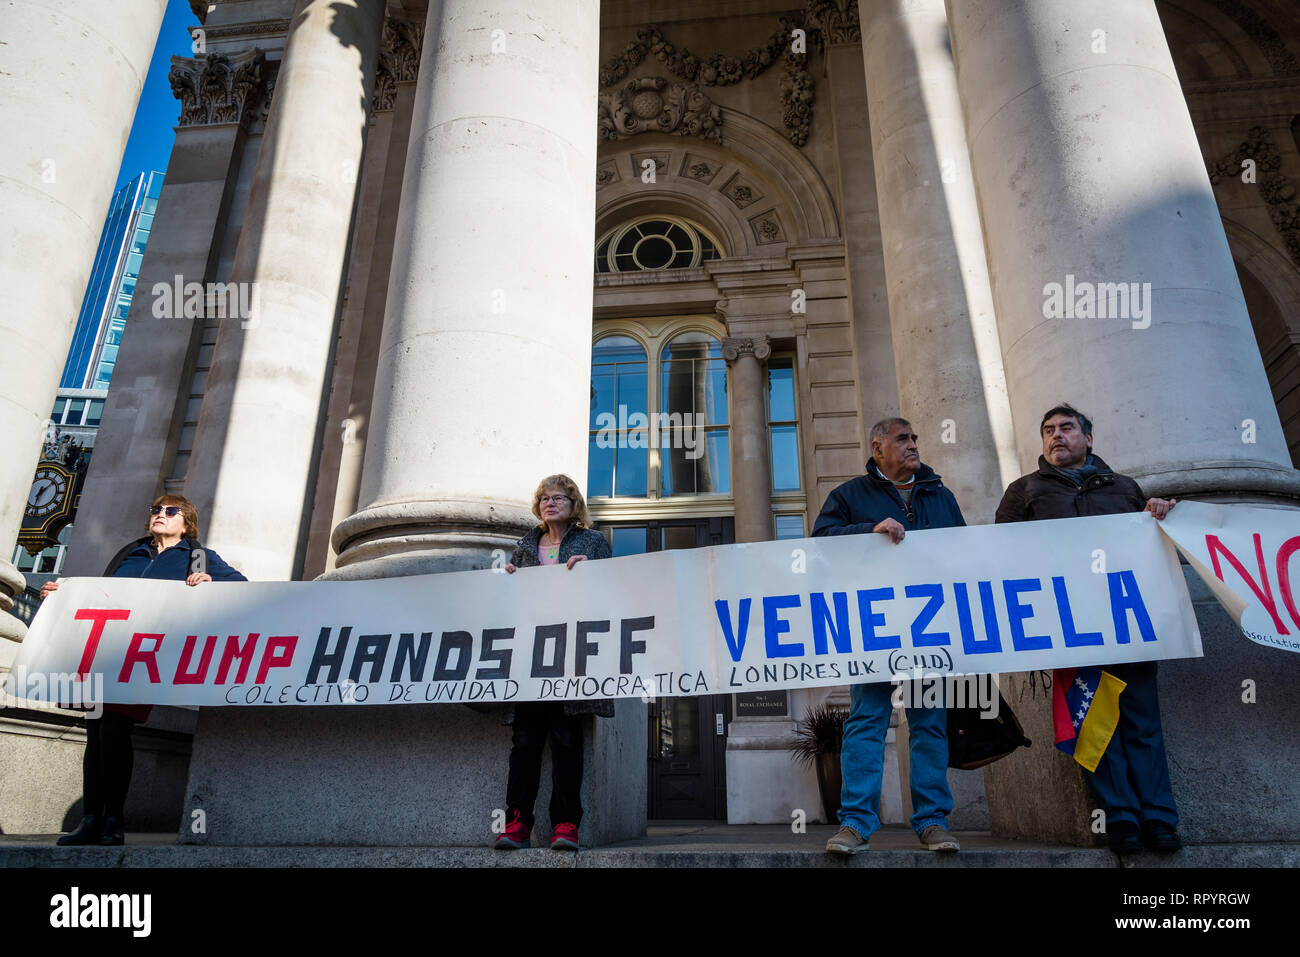 London, UK. 23rd February, 2019. Protest organised by Venezuela Solidarity Campaign in front of the Bank of England demanding that the Bank of England returns the gold to Venezuela, London, UK 23/02/2019 Credit: Bjanka Kadic/Alamy Live News - Stock Image